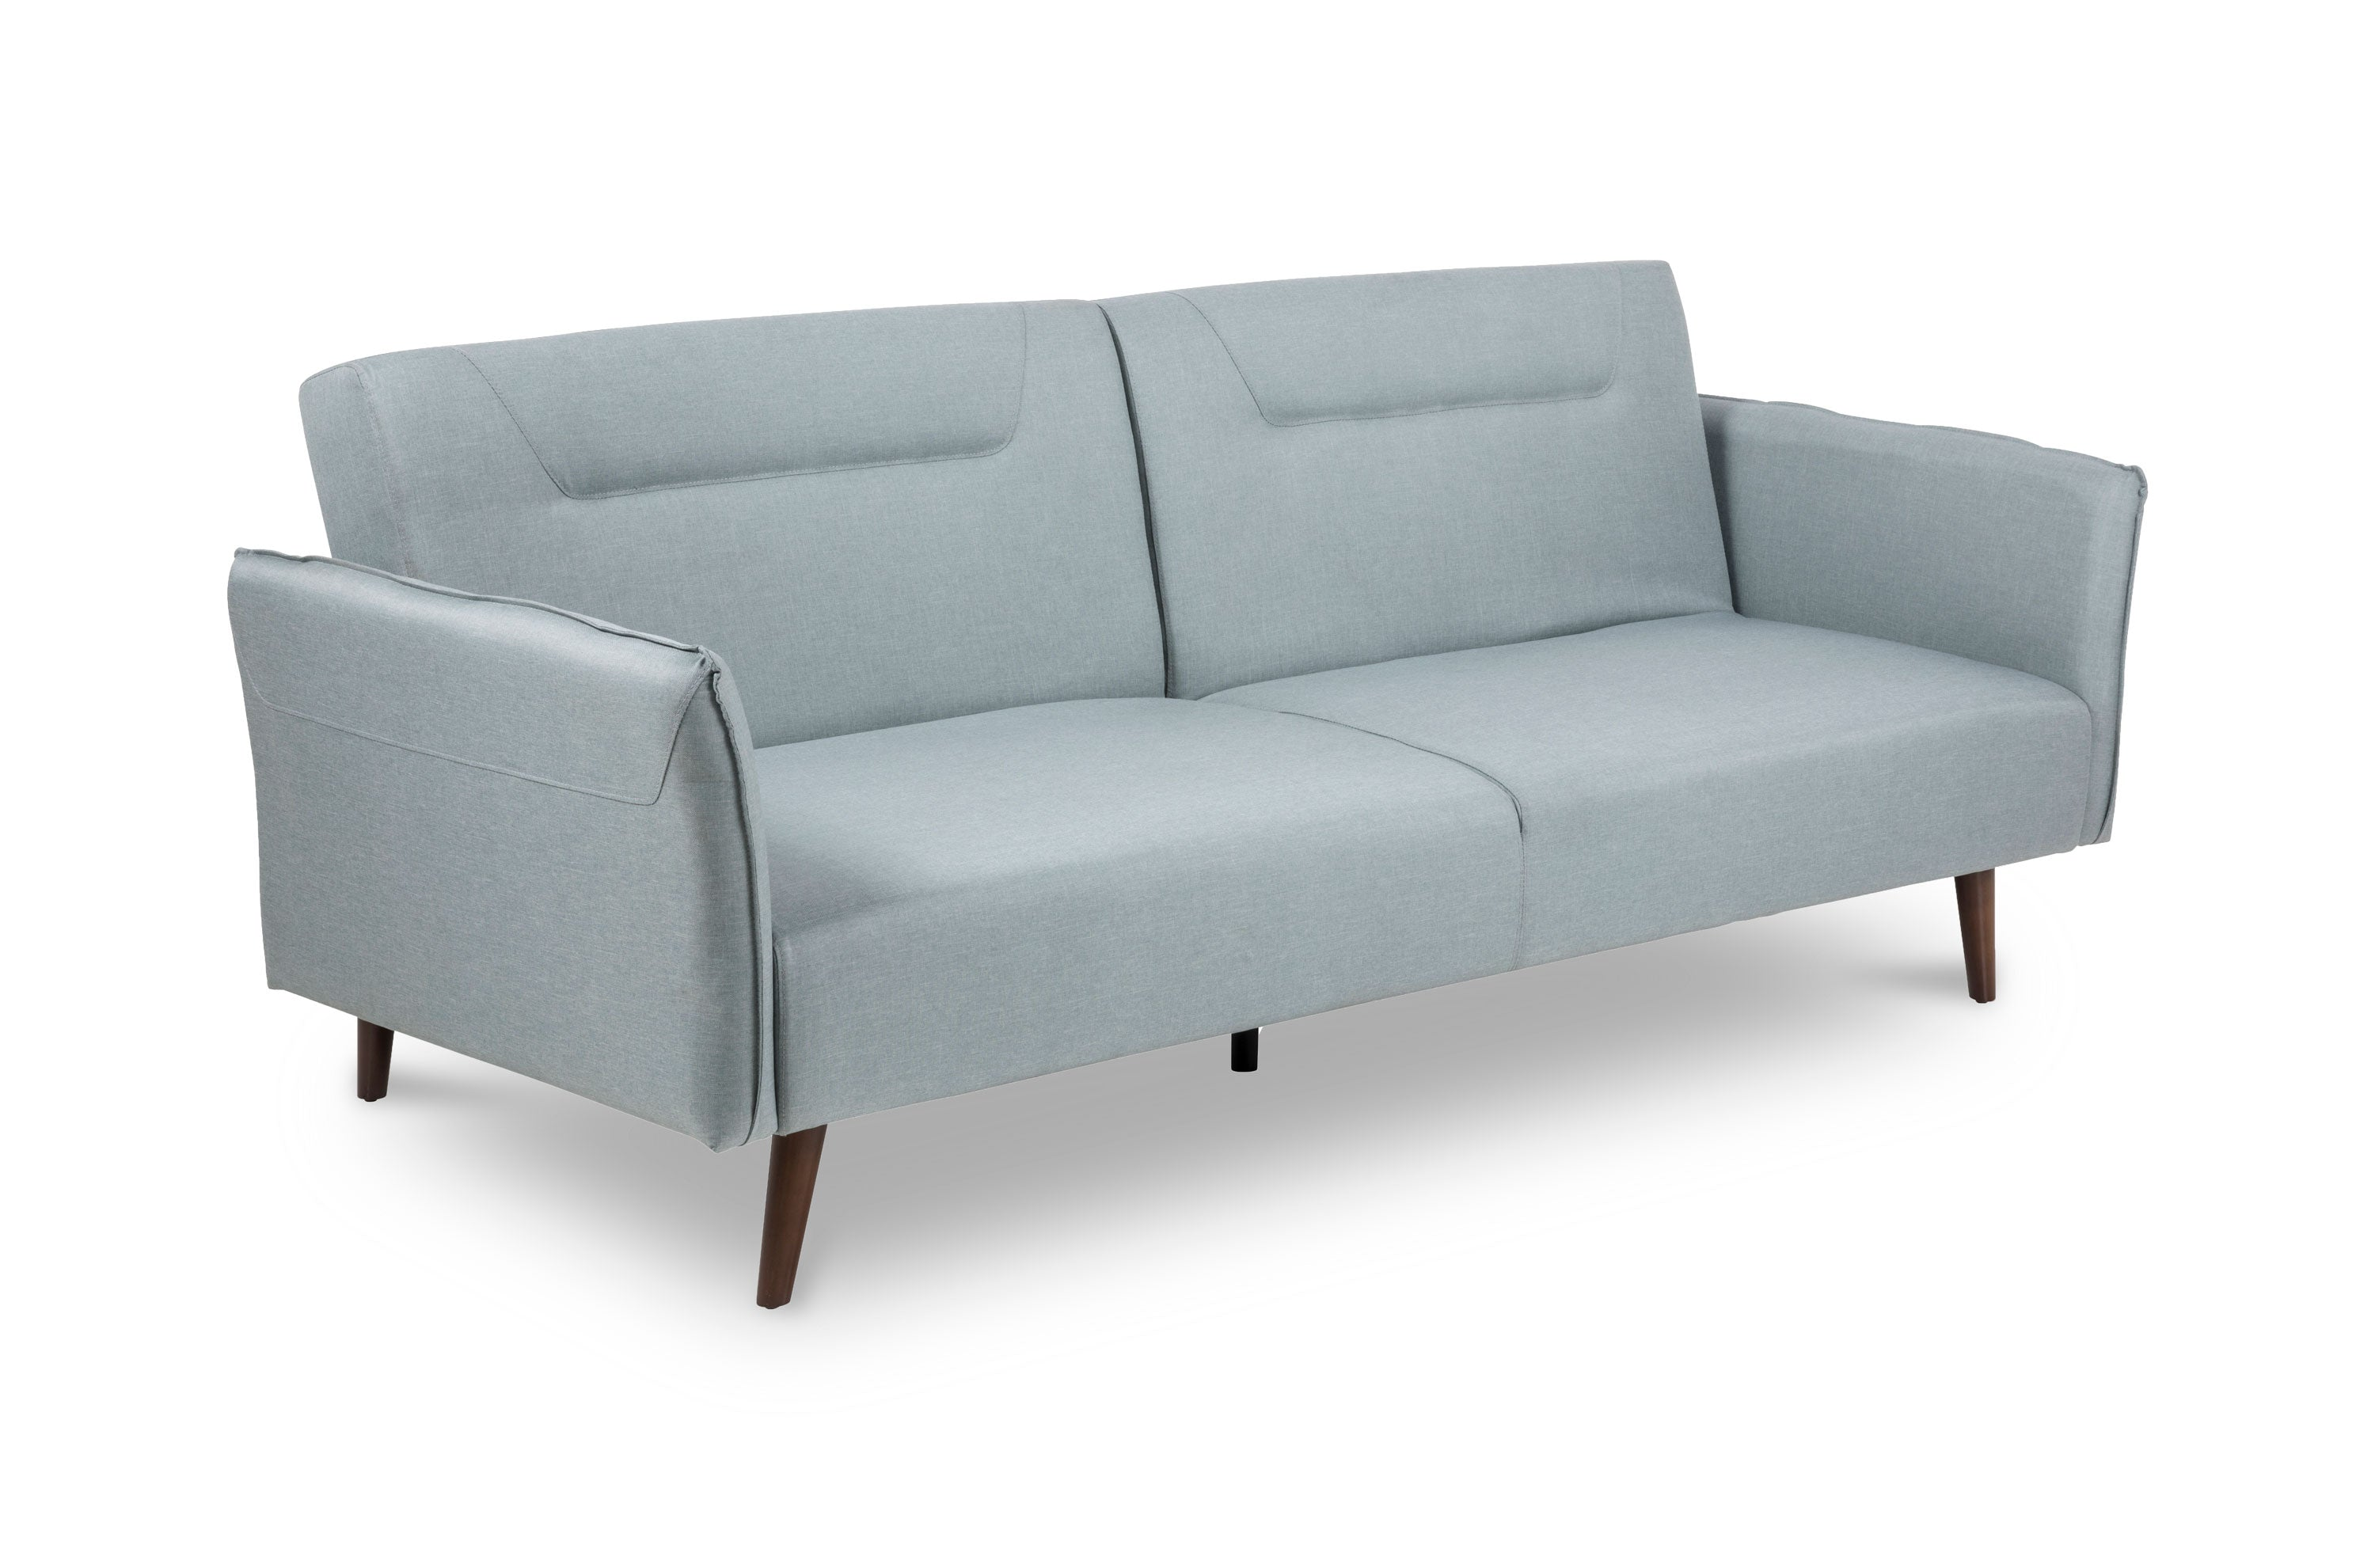 products beds sleeper by trade longhorn innovation horn furniture sofa long bed source at